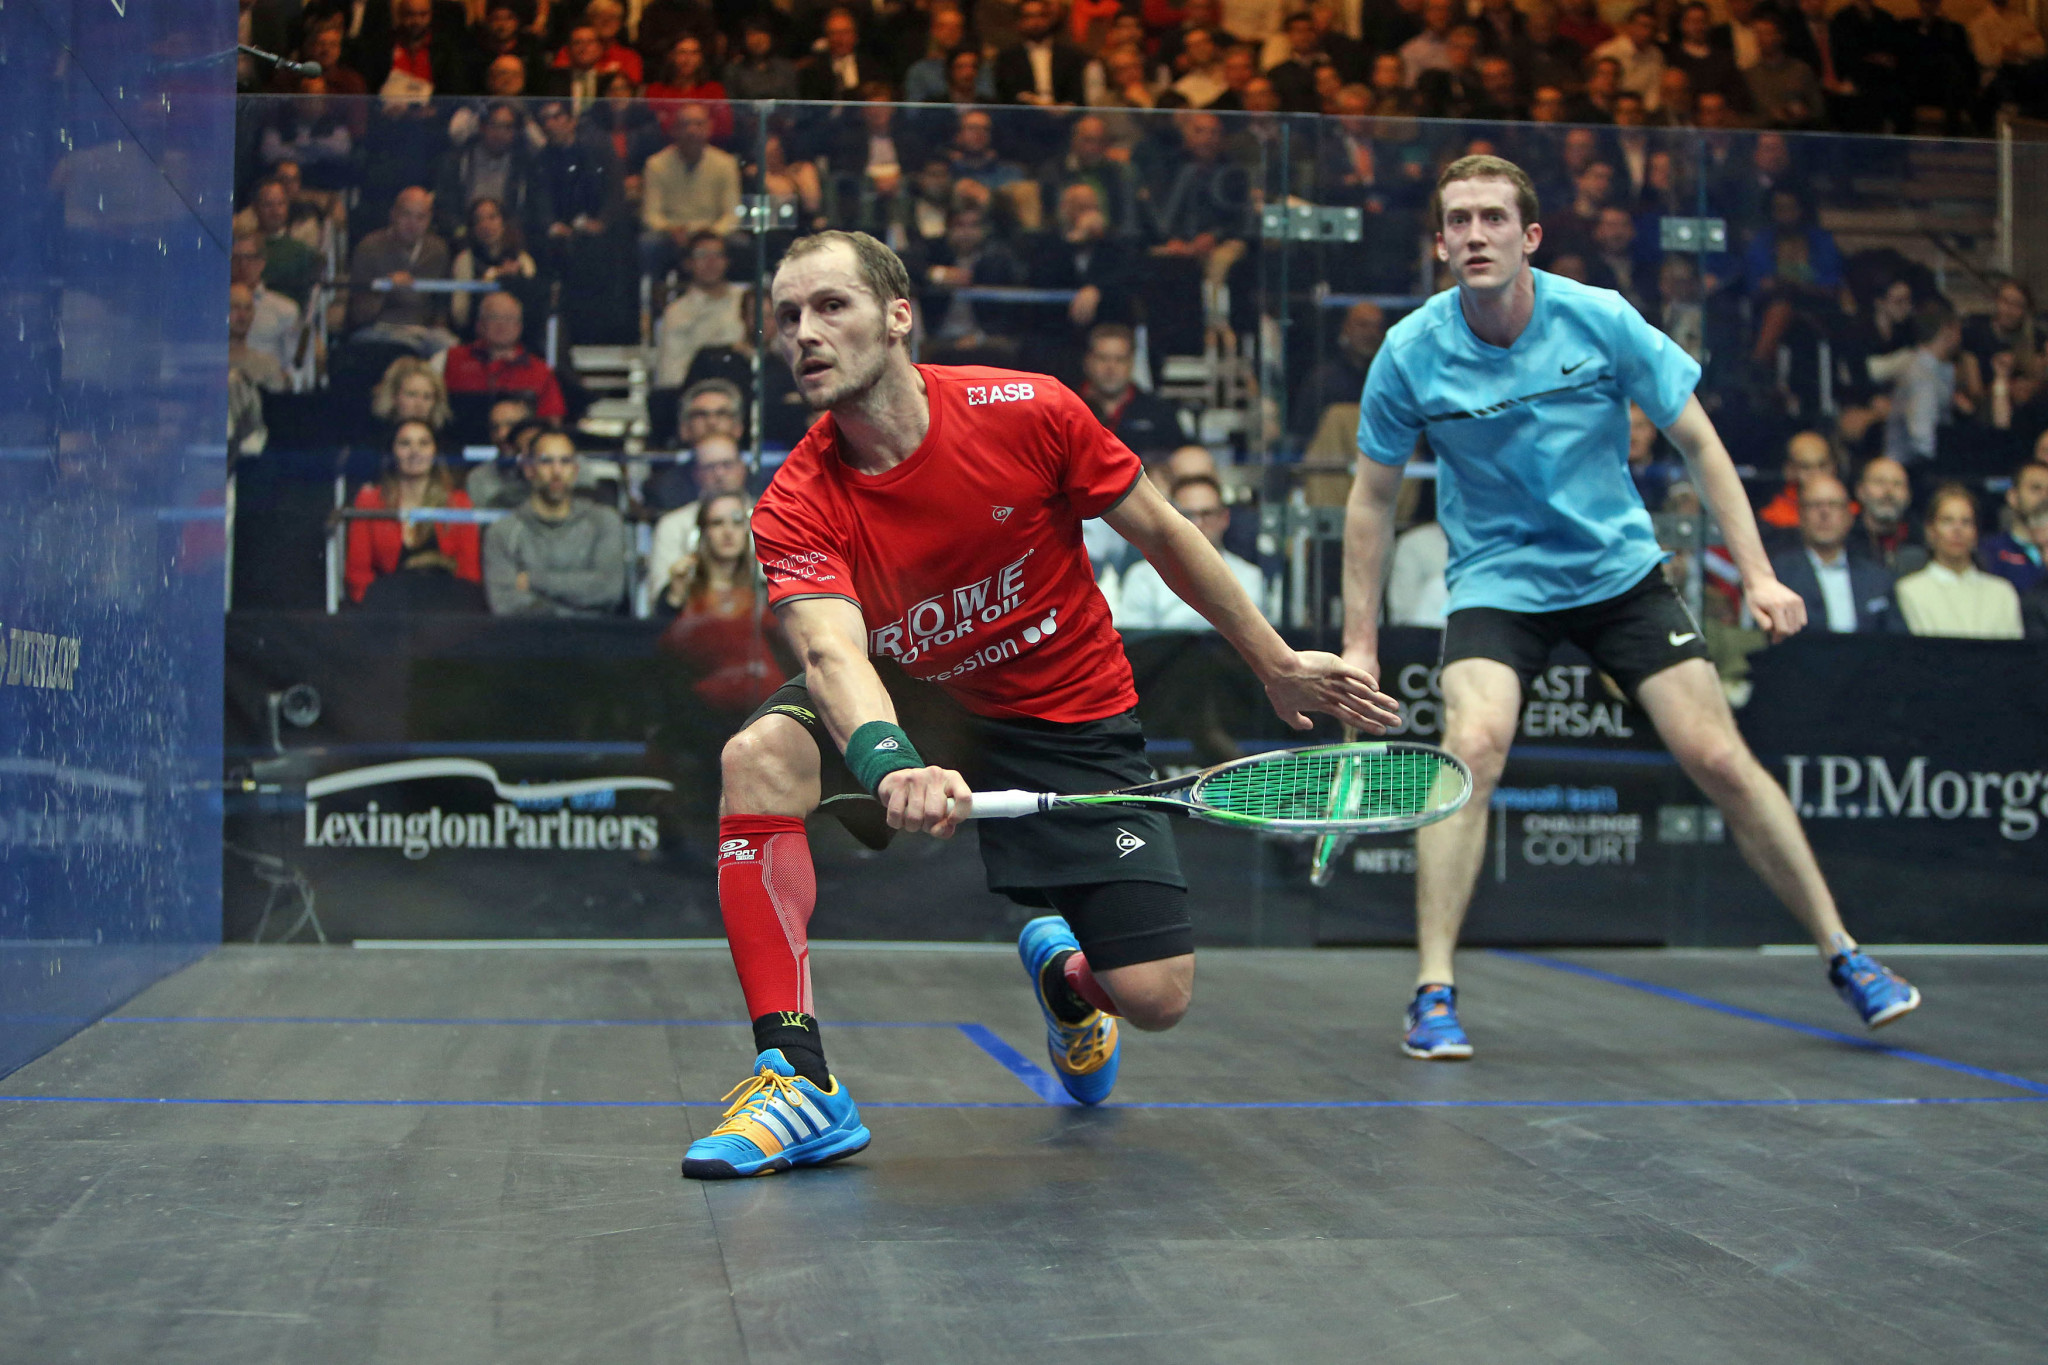 Gaultier safely through to second round at PSA Tournament of Champions in 700th match of career